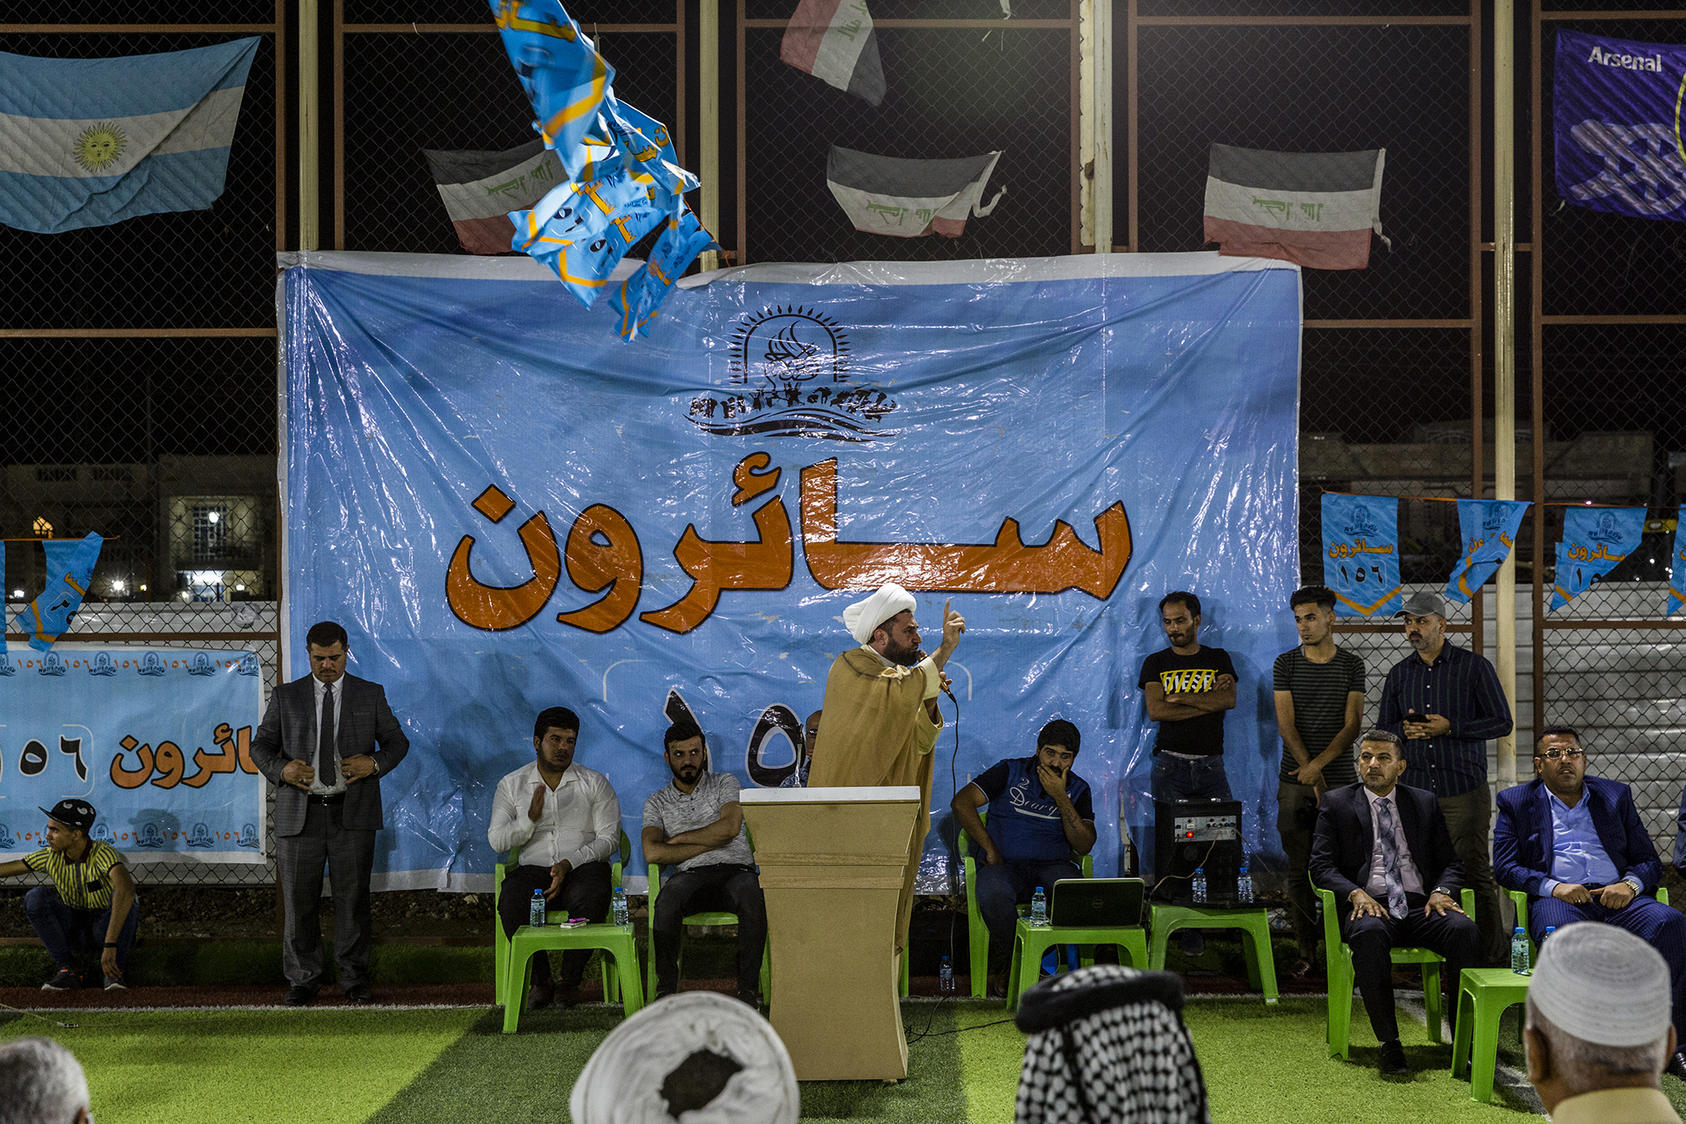 A cleric speaks at a rally for the Sairoon alliance led by the Shiite cleric Muktada al-Sadr in Baghdad, May 9, 2018. (Ivor Prickett/The New York Times)